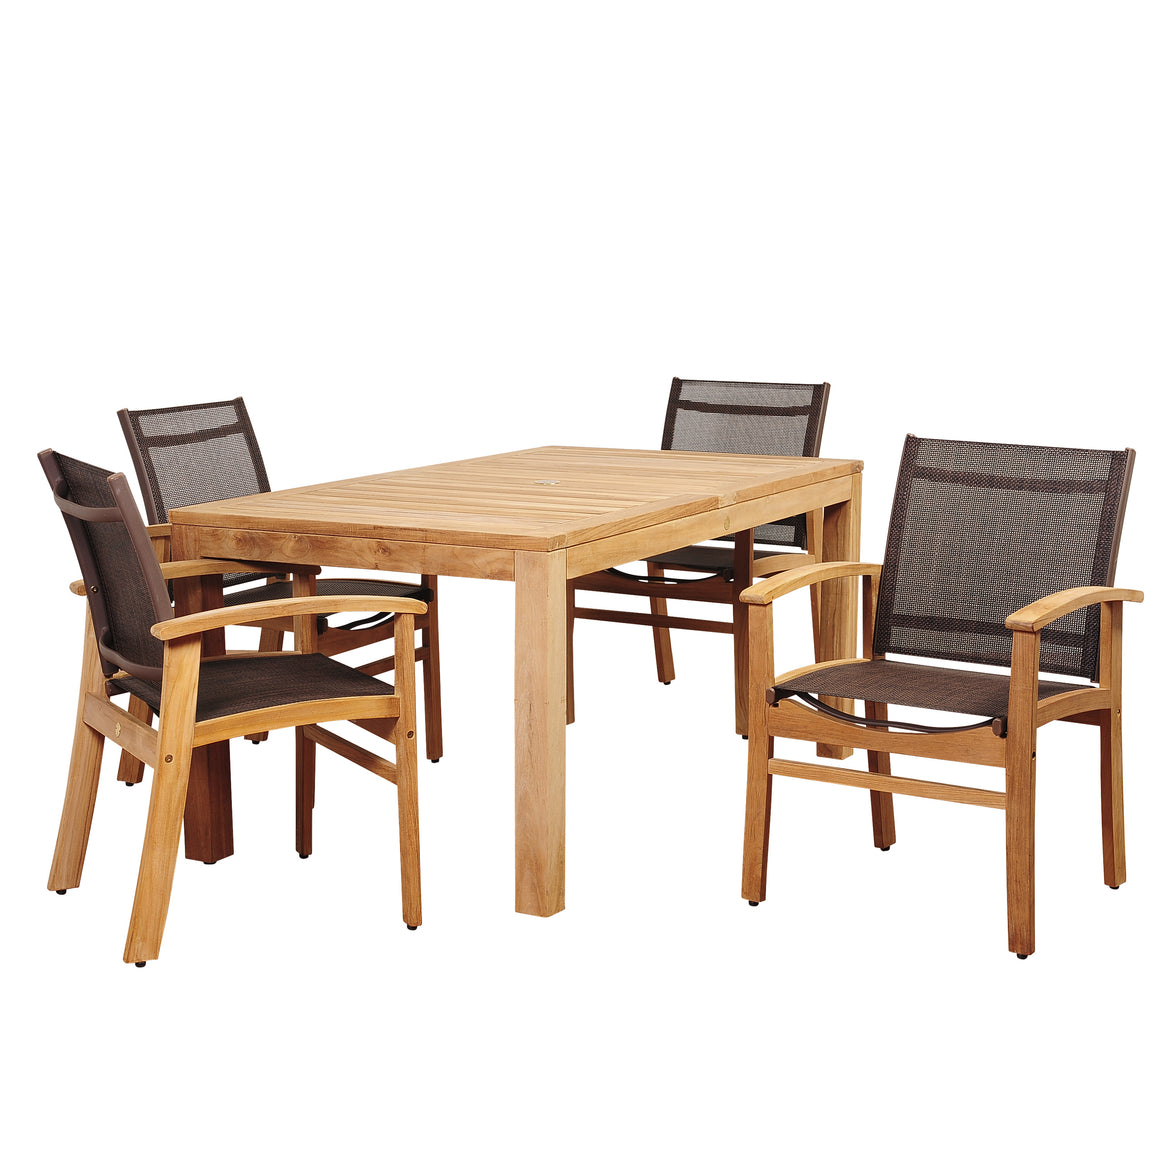 Amazonia Devlin 5 Piece Teak Rectangular Dining Set with Brown Sling Chair , International Home Miami- grayburd